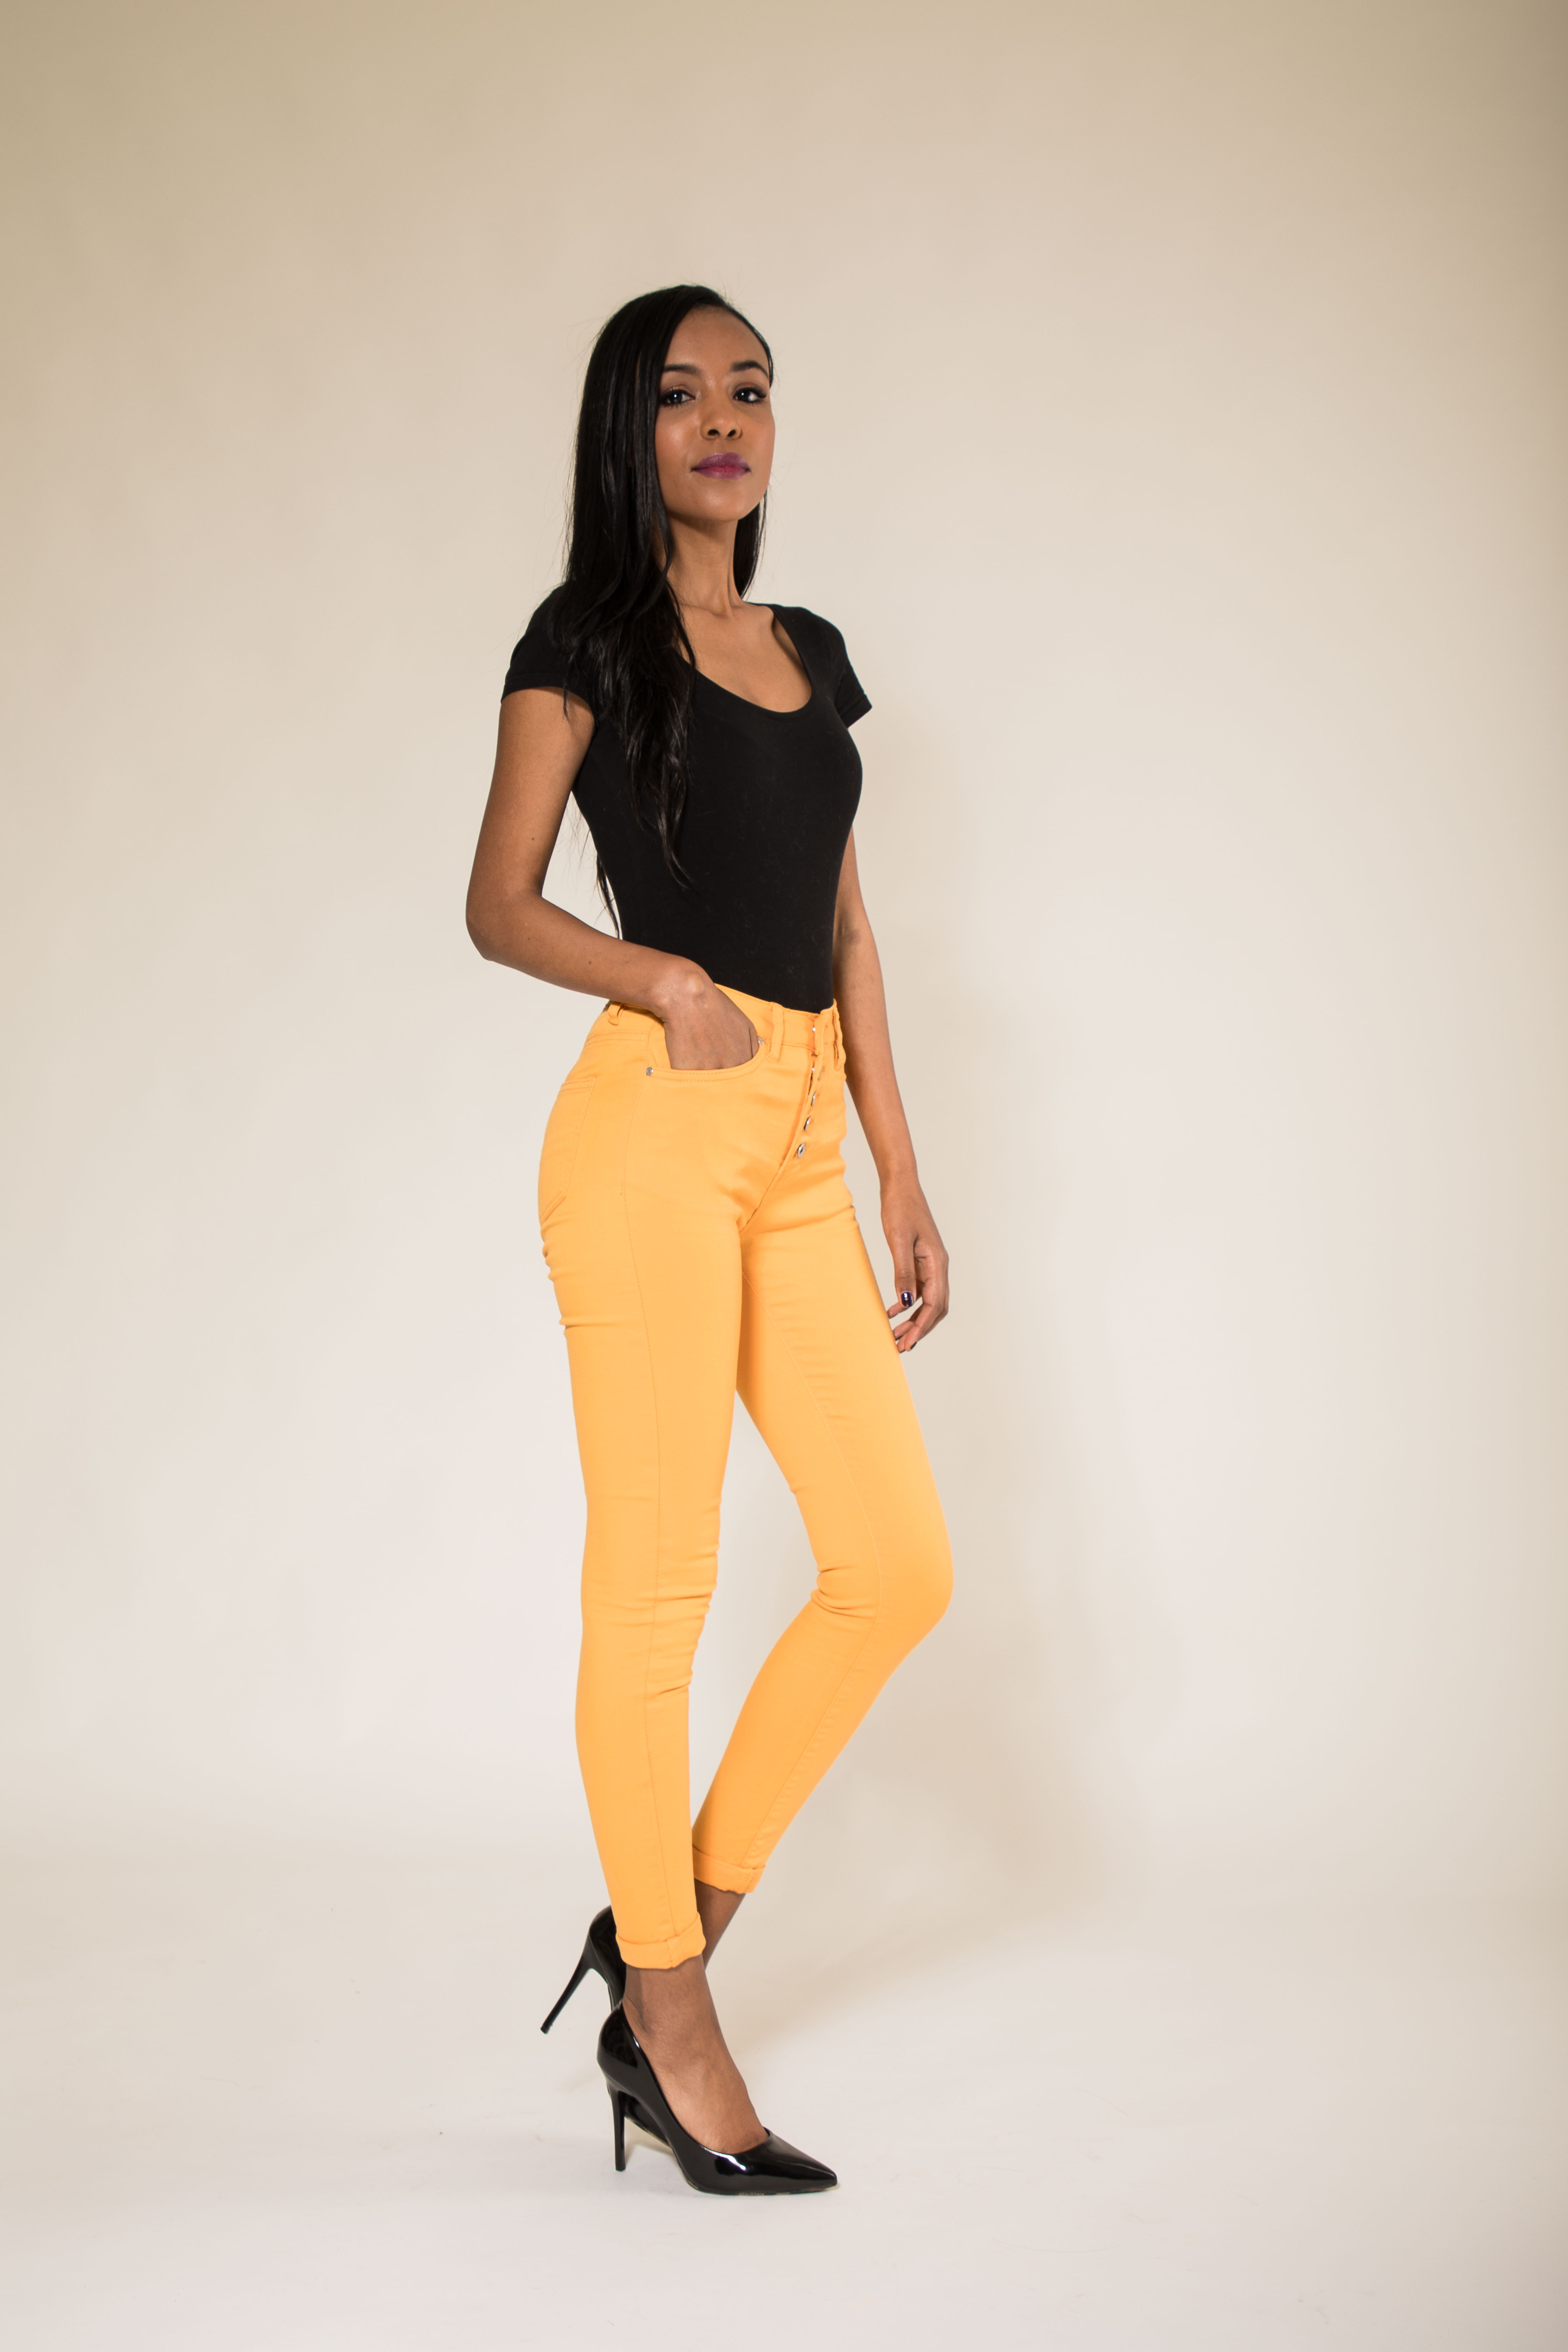 Women-High-Waisted-Jeans-Ladies-Coloured-Stretchy-jeggings-Pants-Size-6-14 thumbnail 10